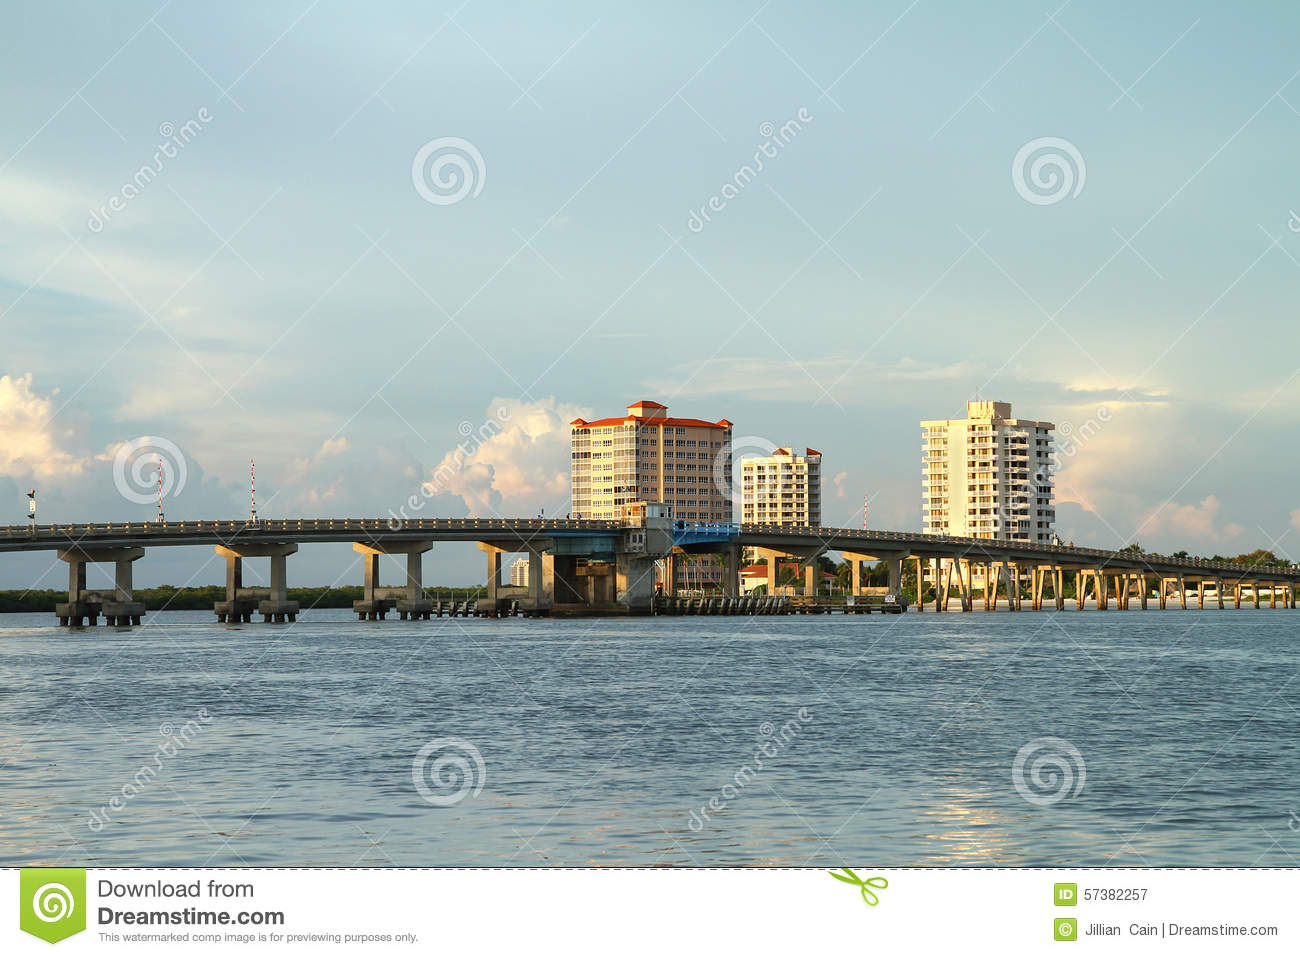 Big Carlos Pass Bridge in Fort Myers Beach, Florida, USA